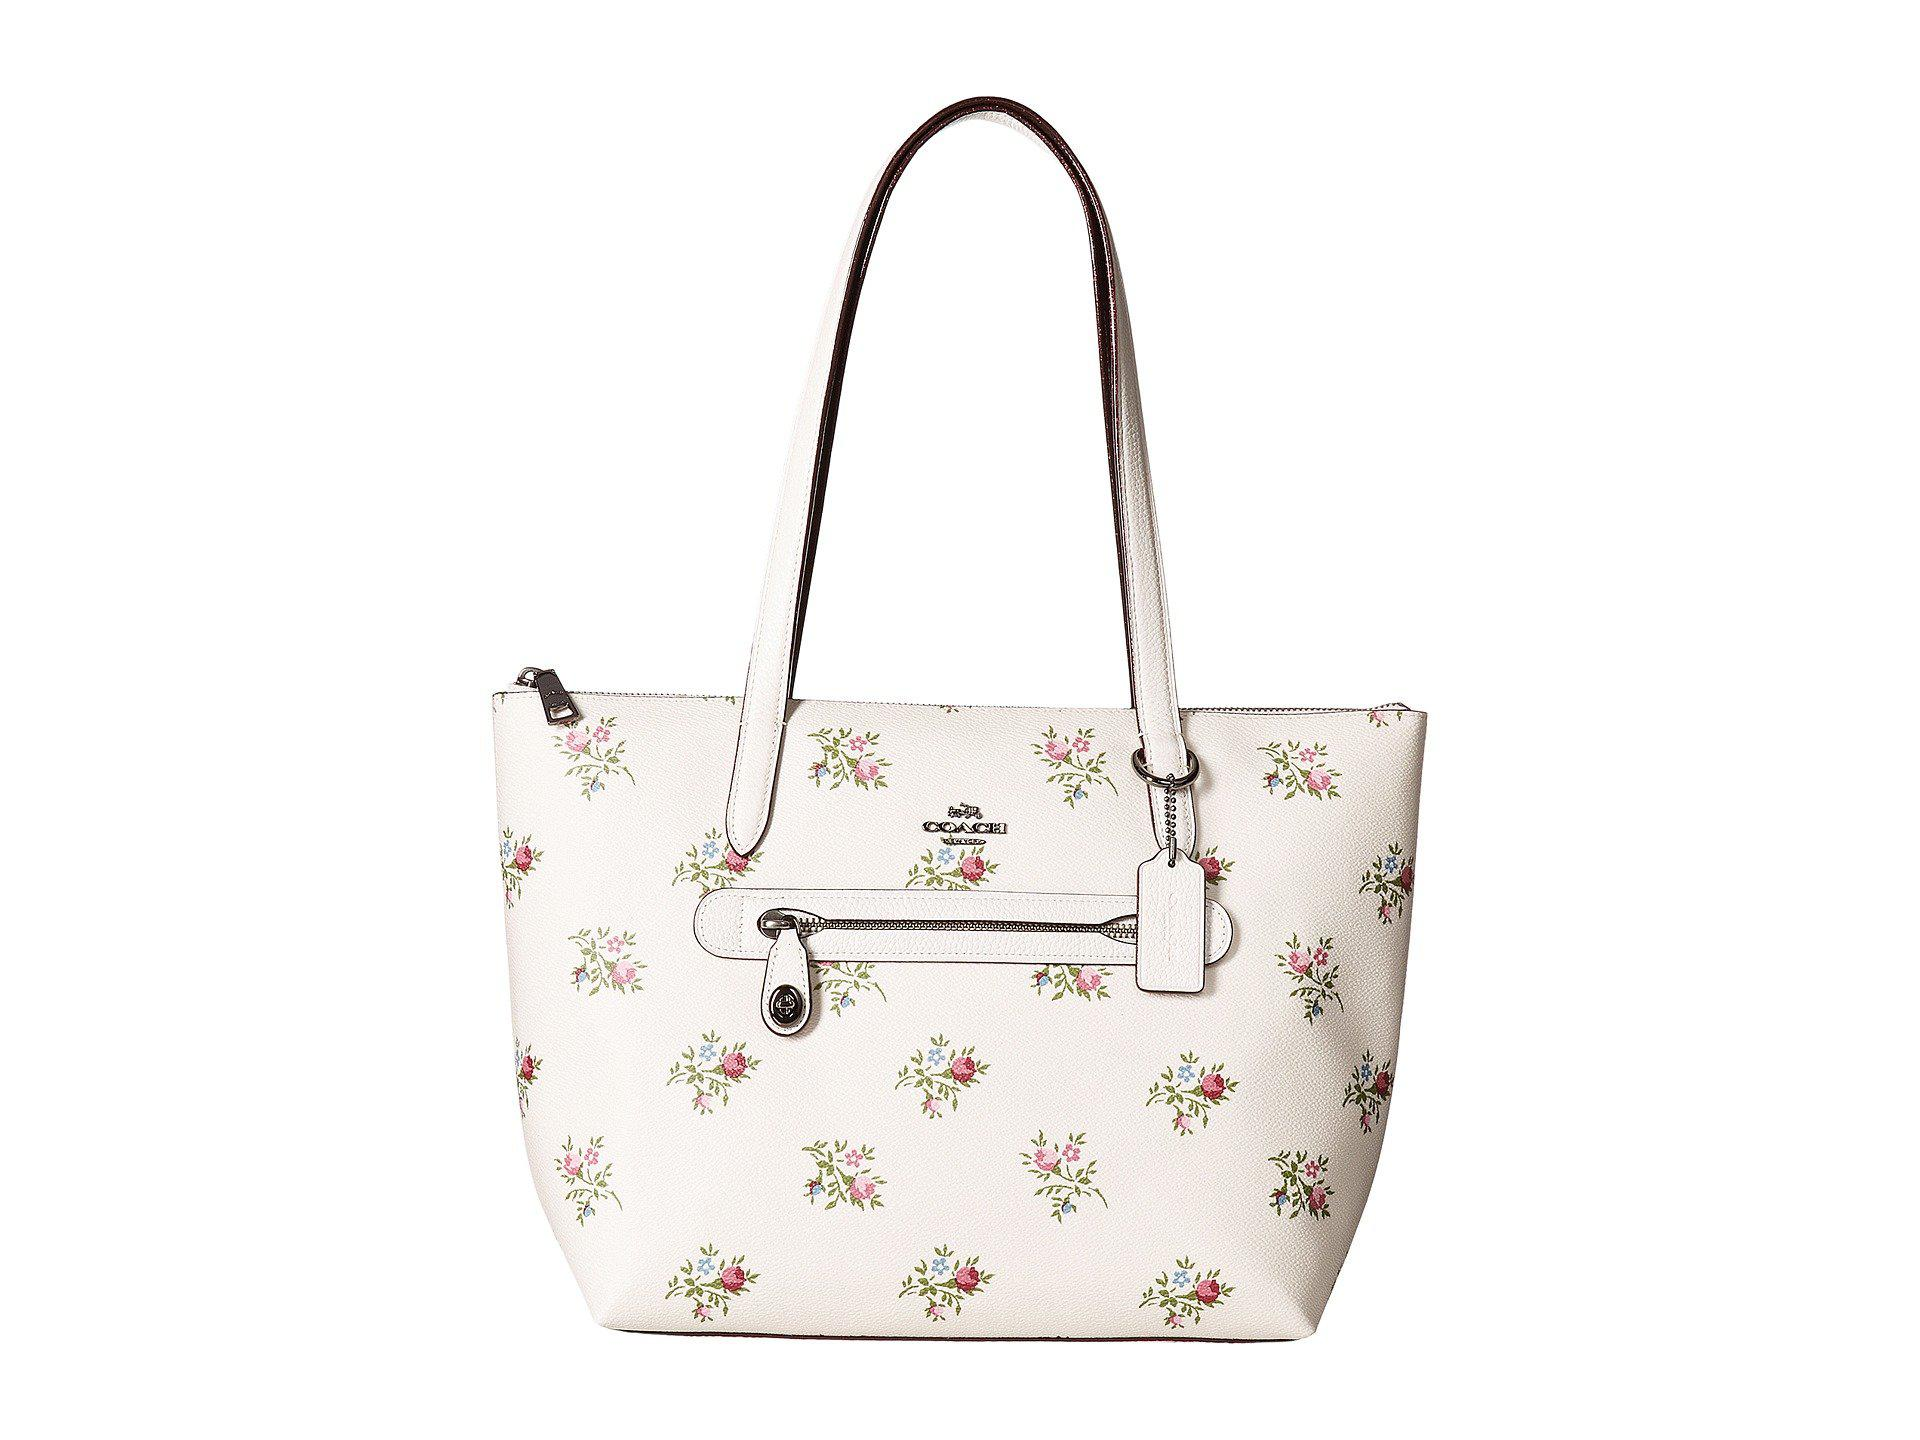 f5219dd5920 ... coupon for lyst coach taylor tote in floral printed leather b69ad 54d38  ...